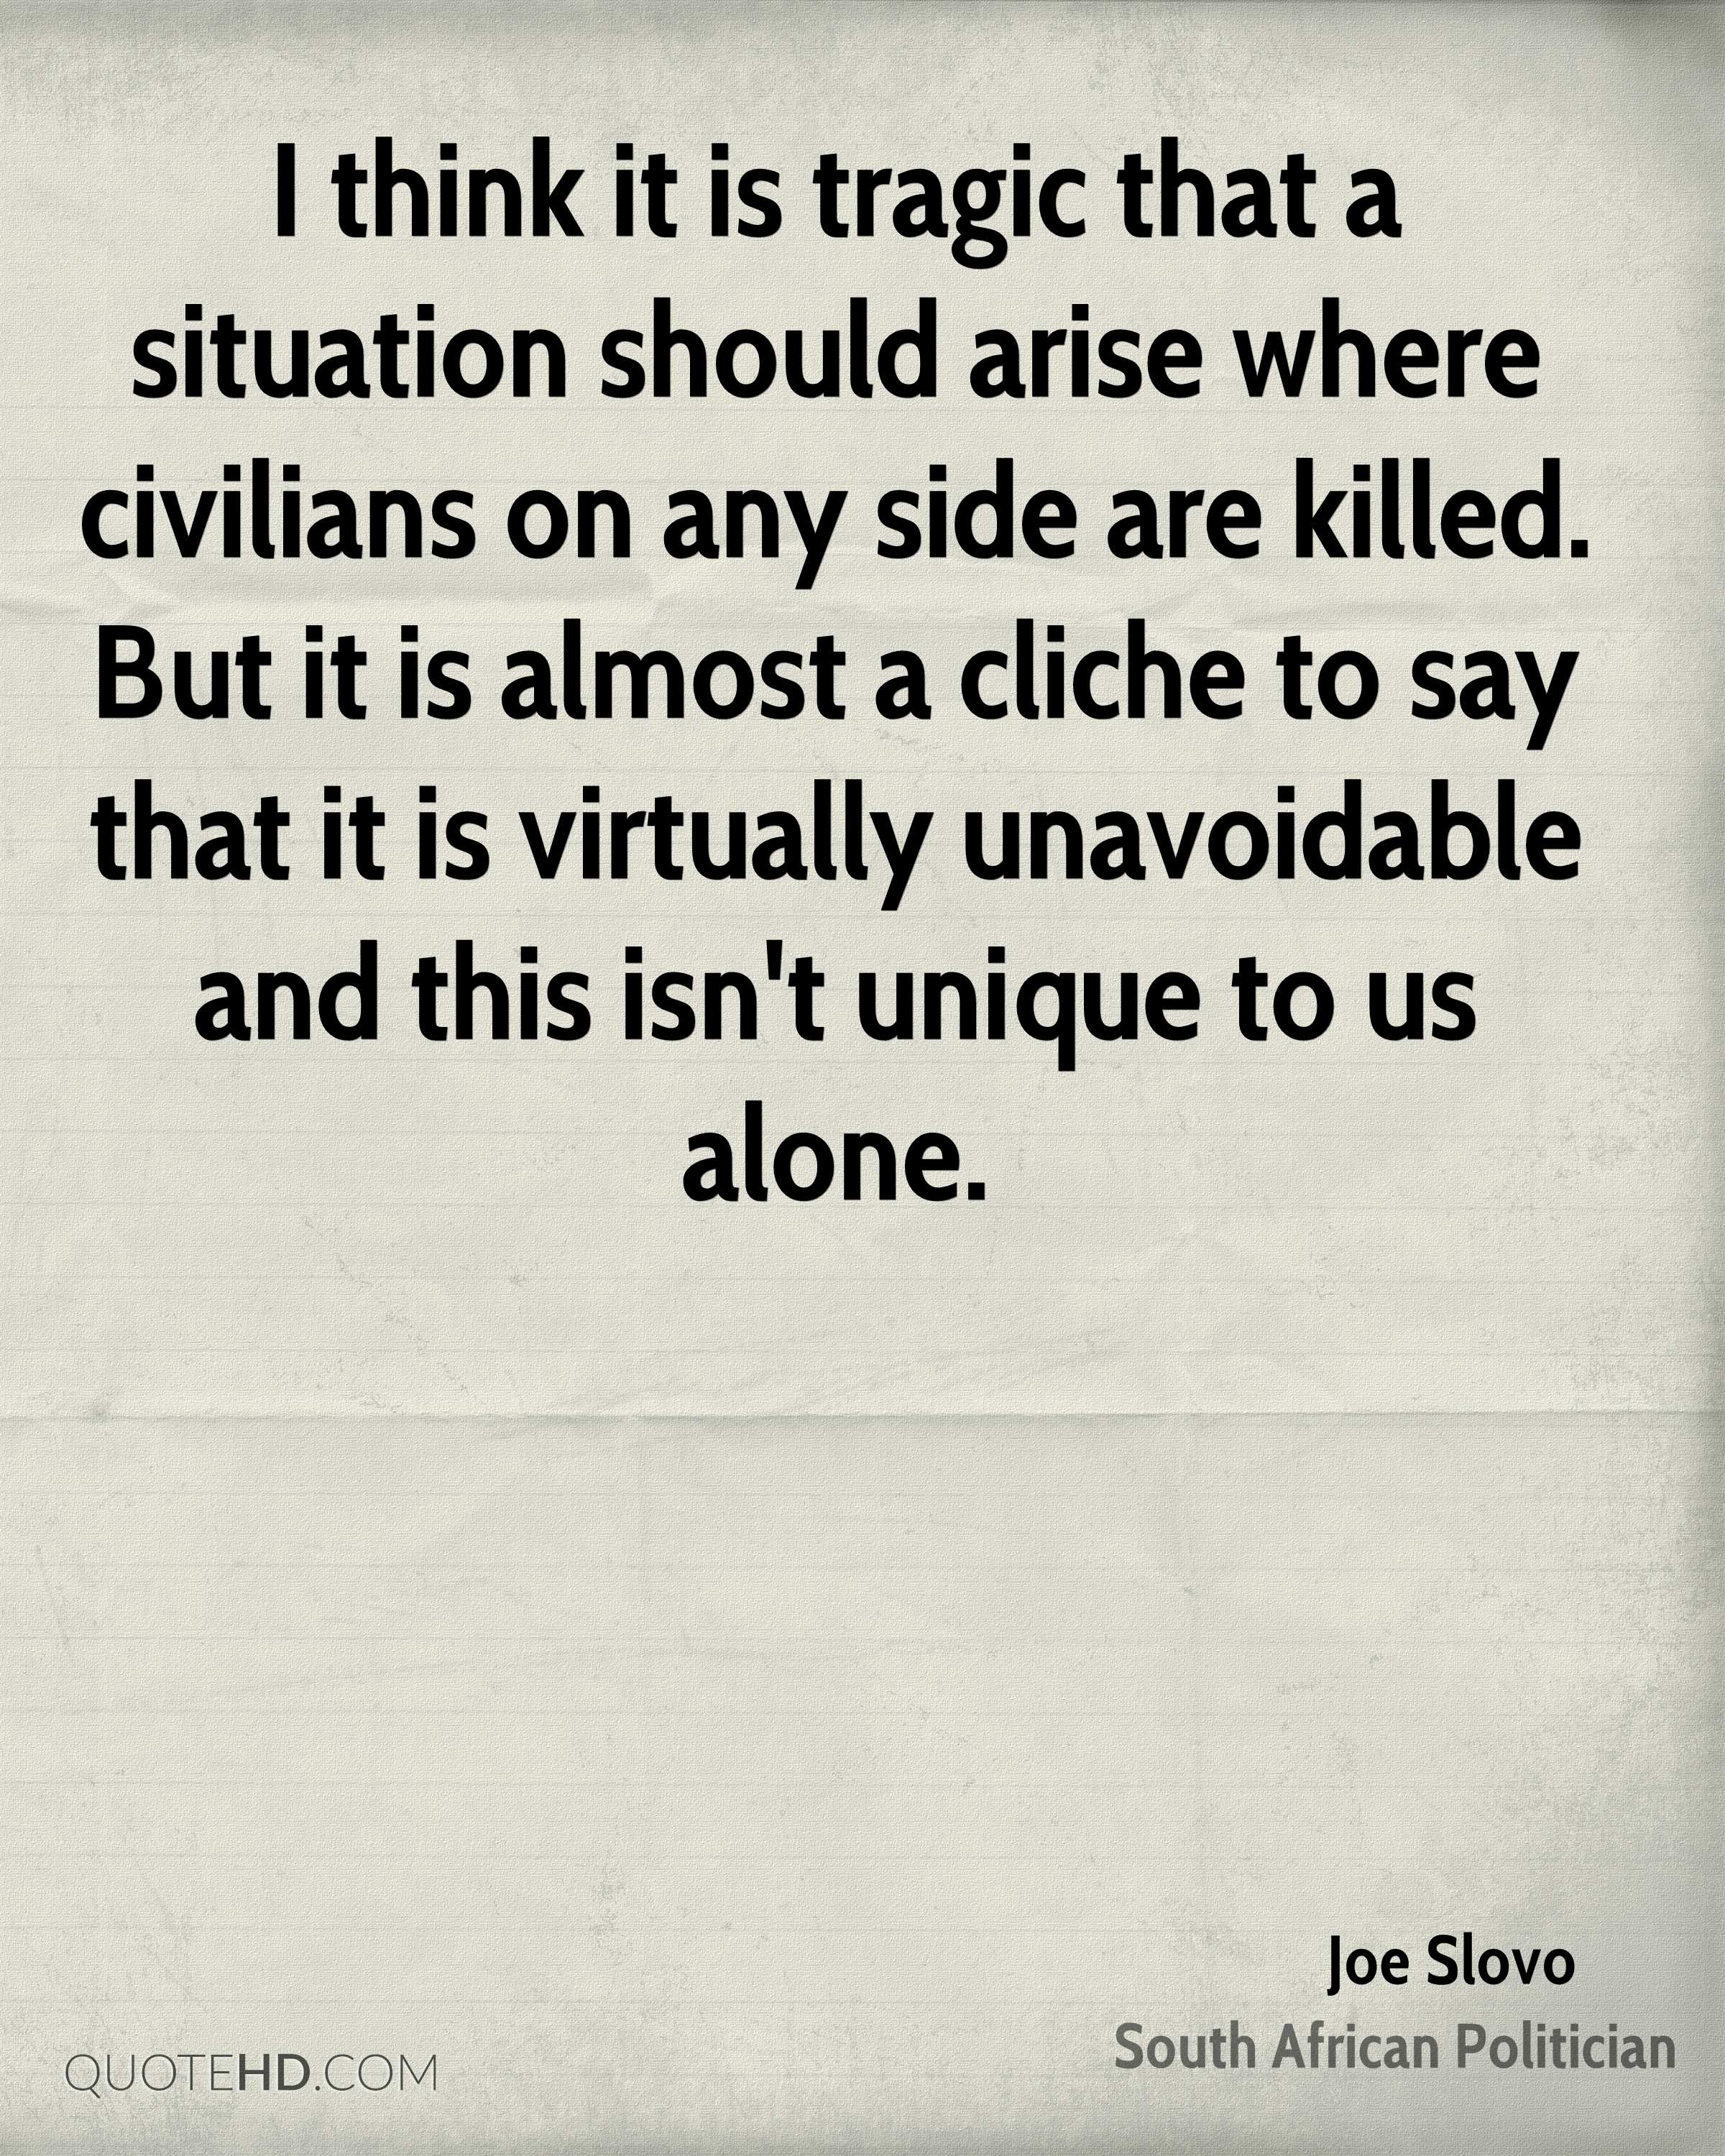 I think it is tragic that a situation should arise where civilians on any side are killed. But it is almost a cliche to say that it is virtually unavoidable and this isn't unique to us alone.